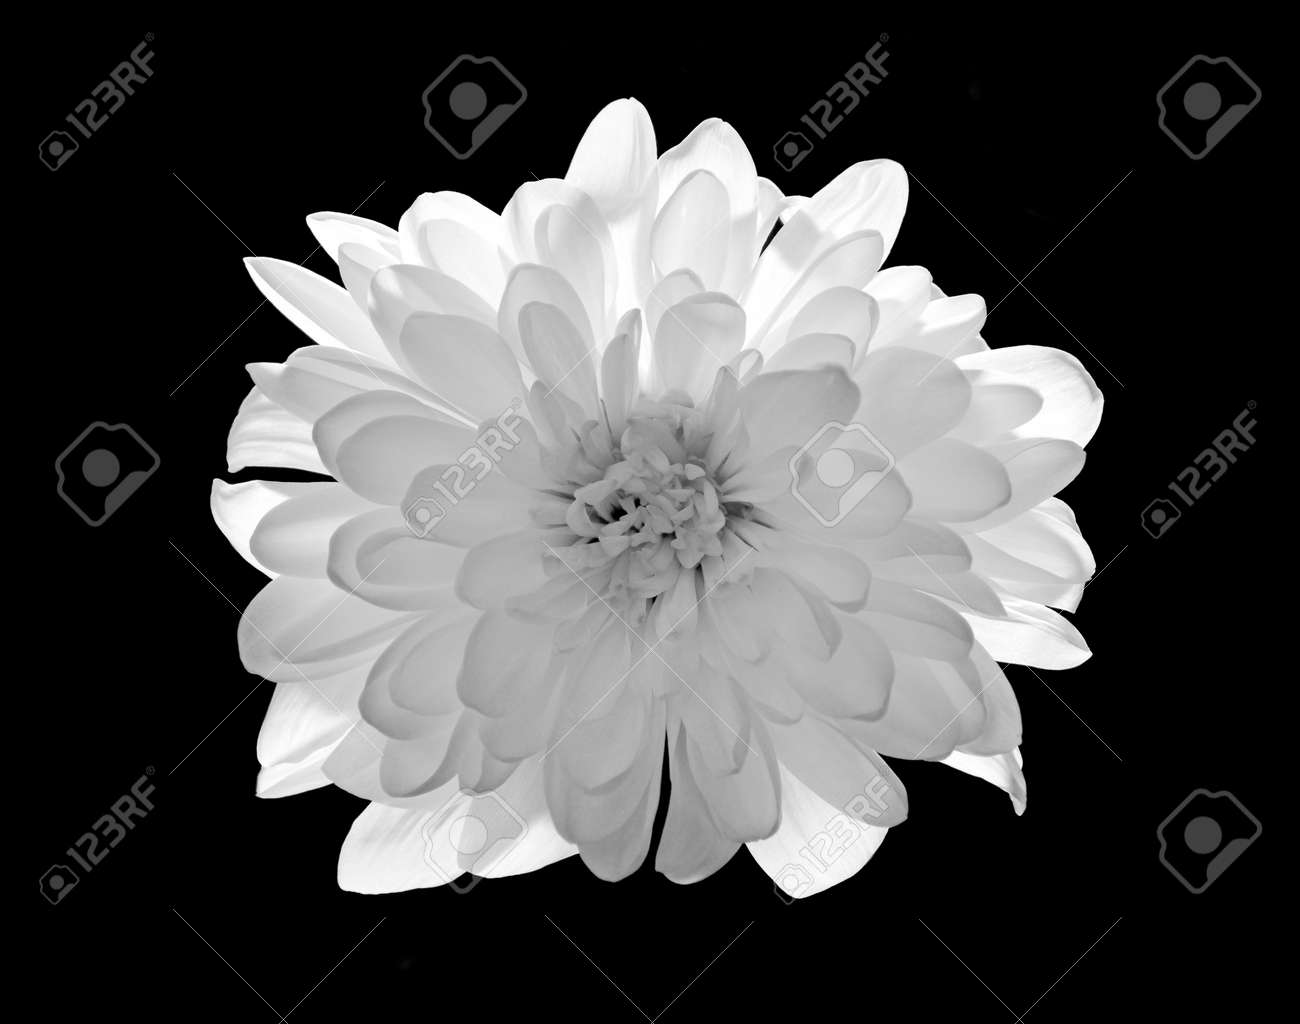 Black and white flower stock photo picture and royalty free image black and white flower stock photo 22932696 mightylinksfo